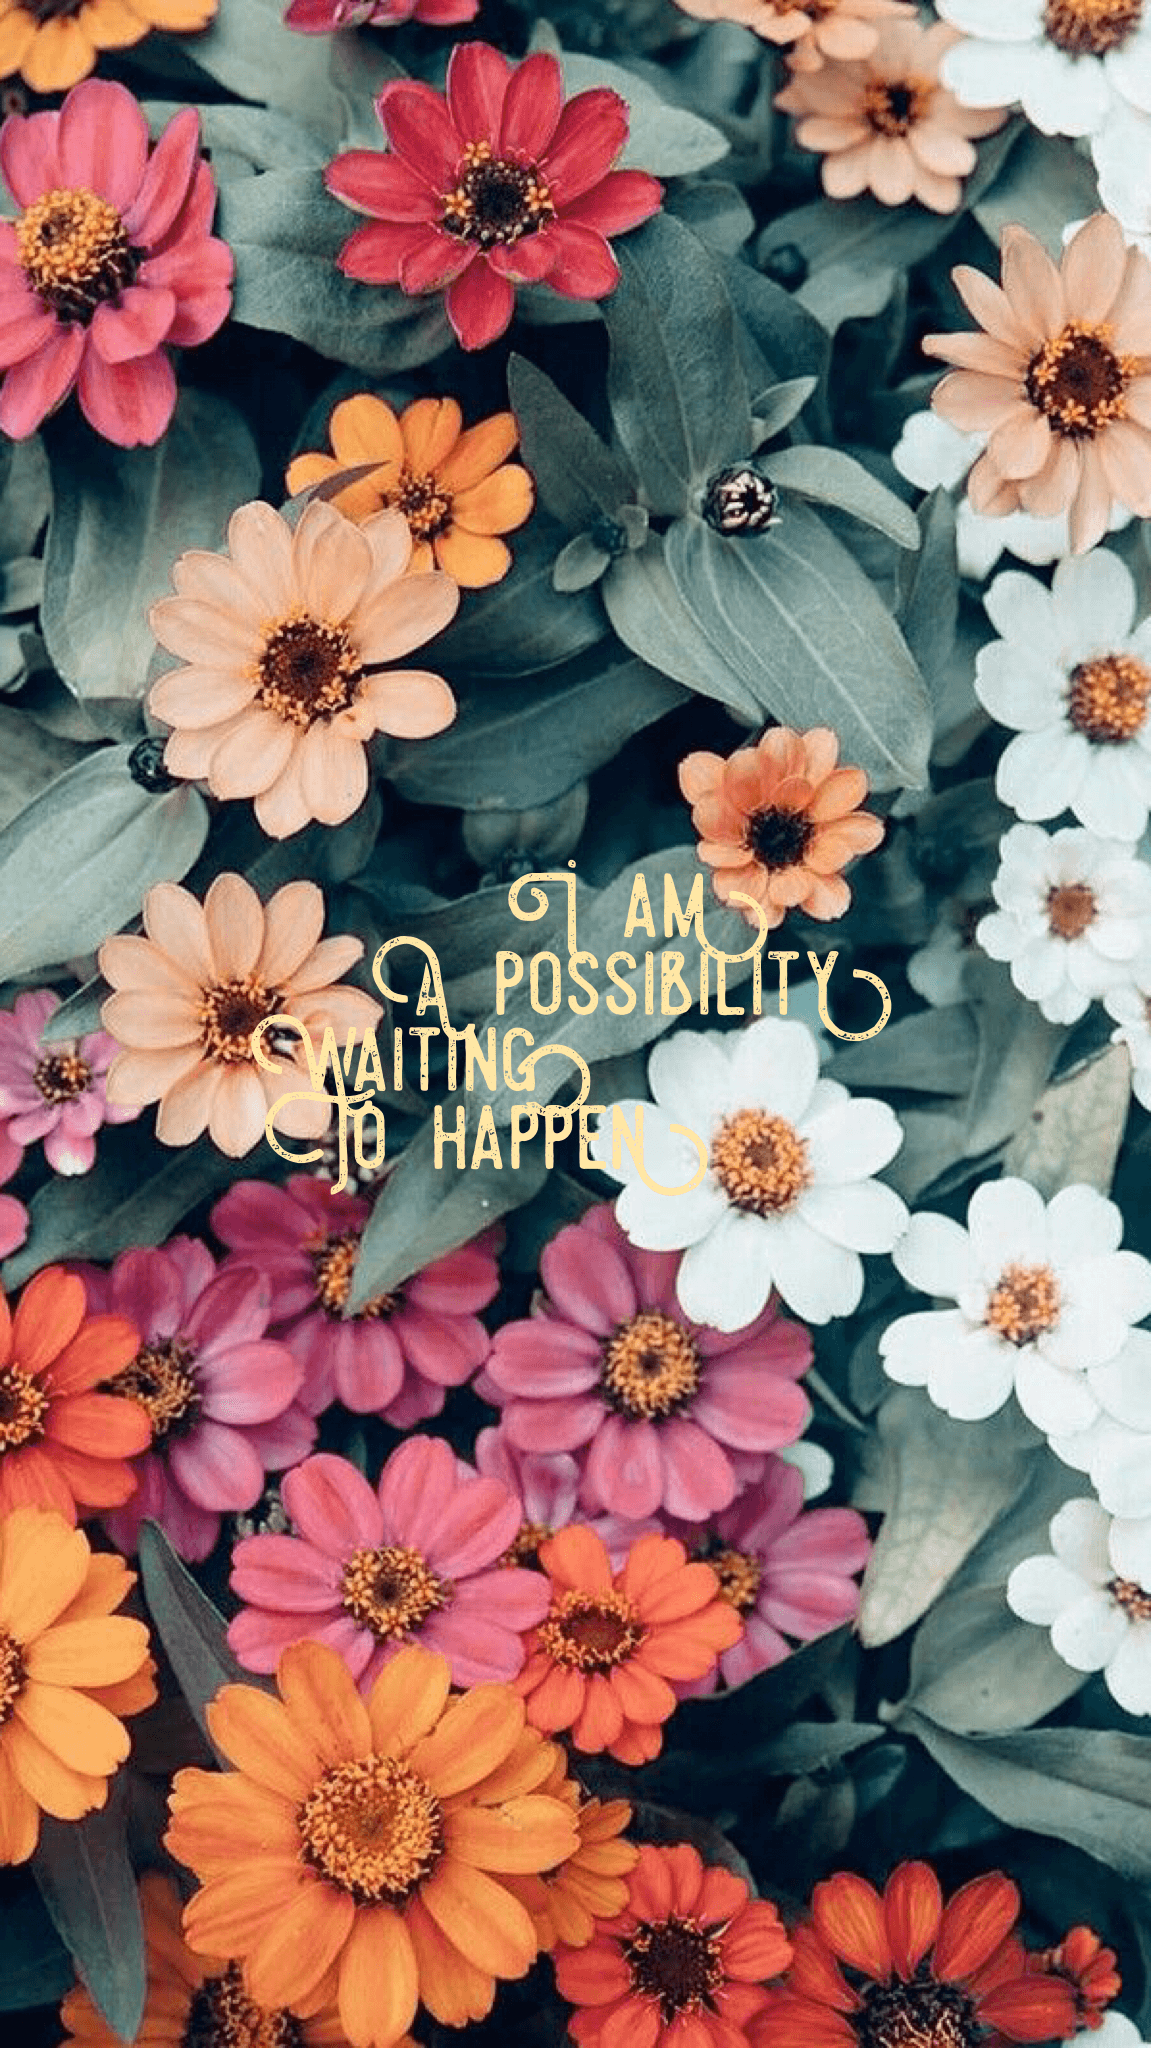 Quotes Flower Wallpapers Wallpaper Cave